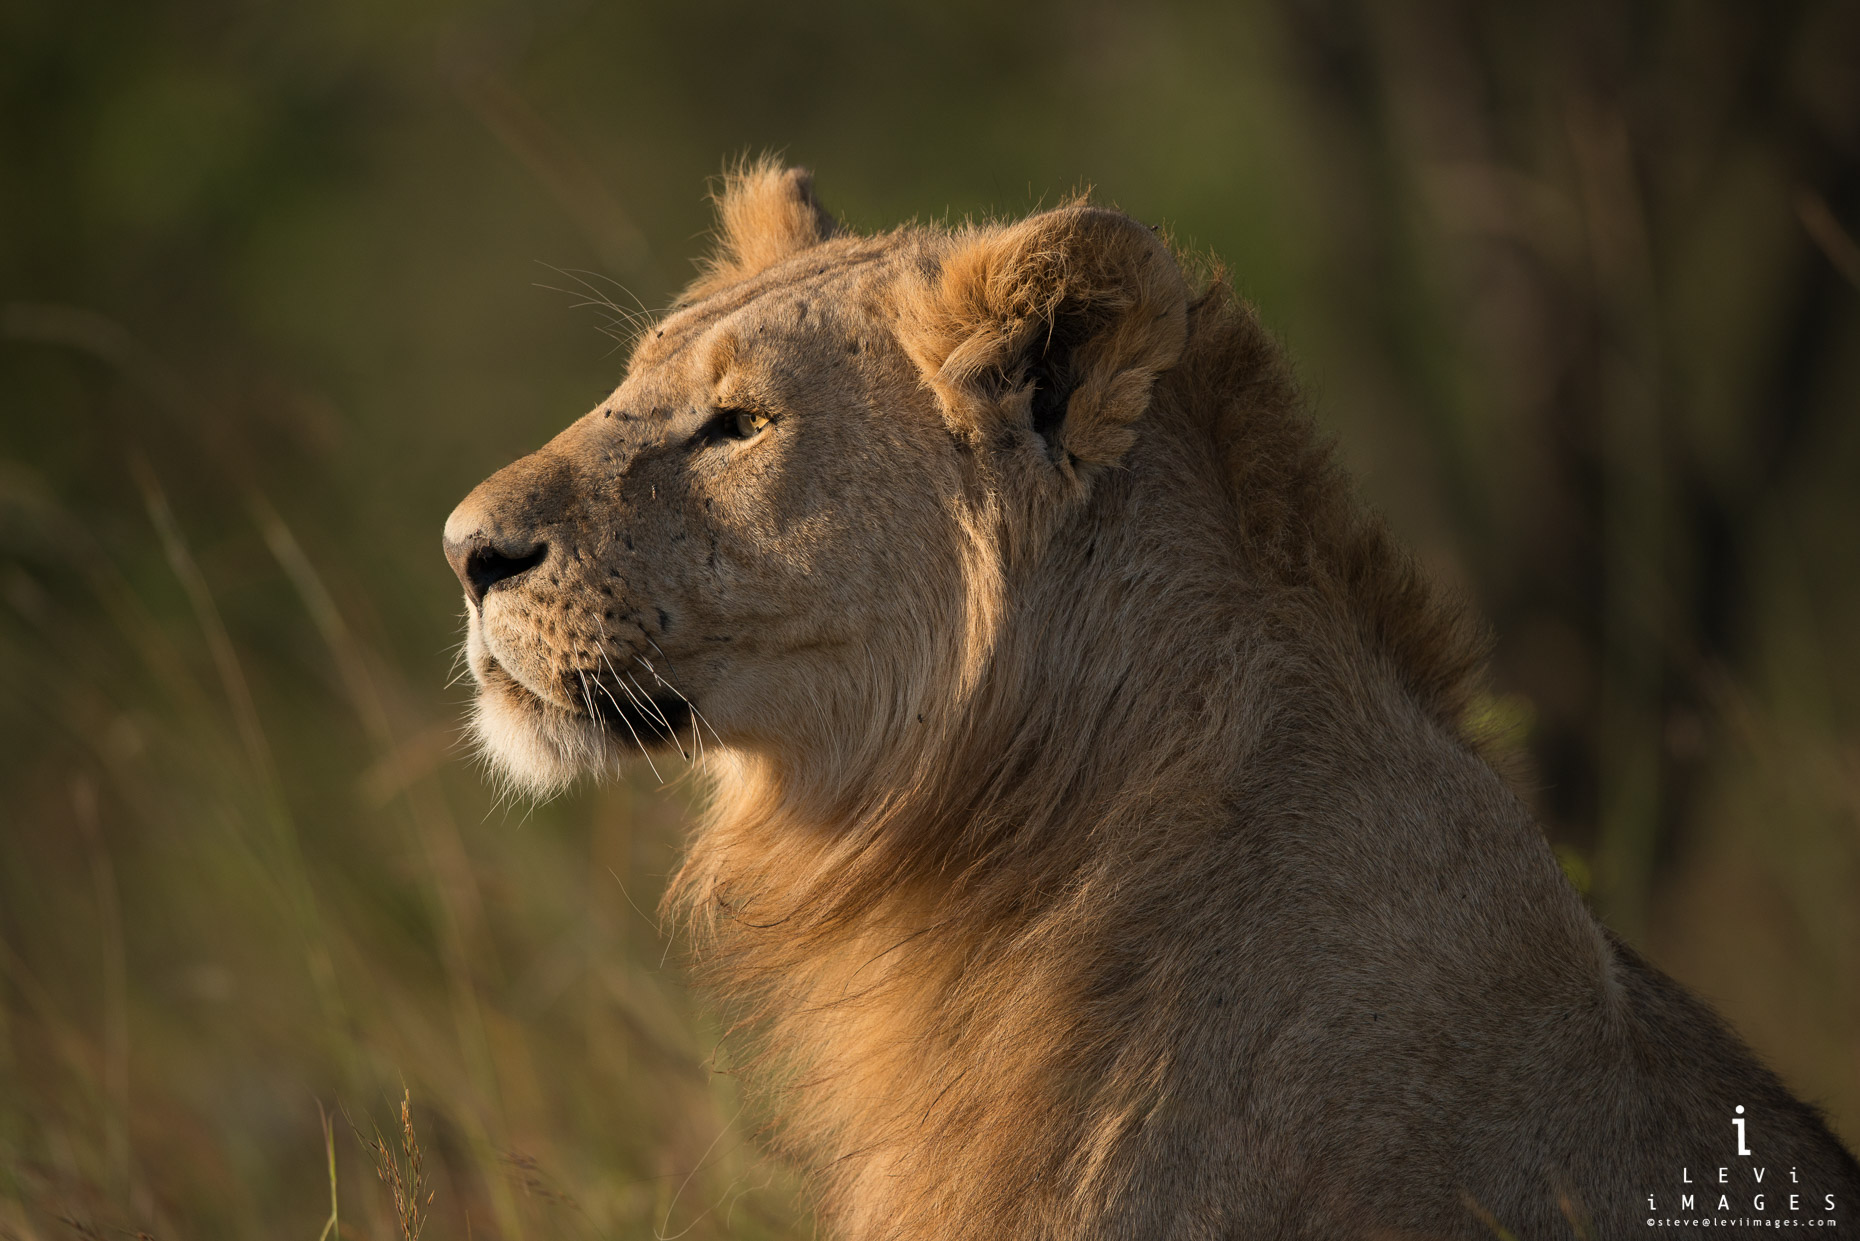 Young lion (Panthera leo) portrait in golden light. Maasai Mara, Kenya